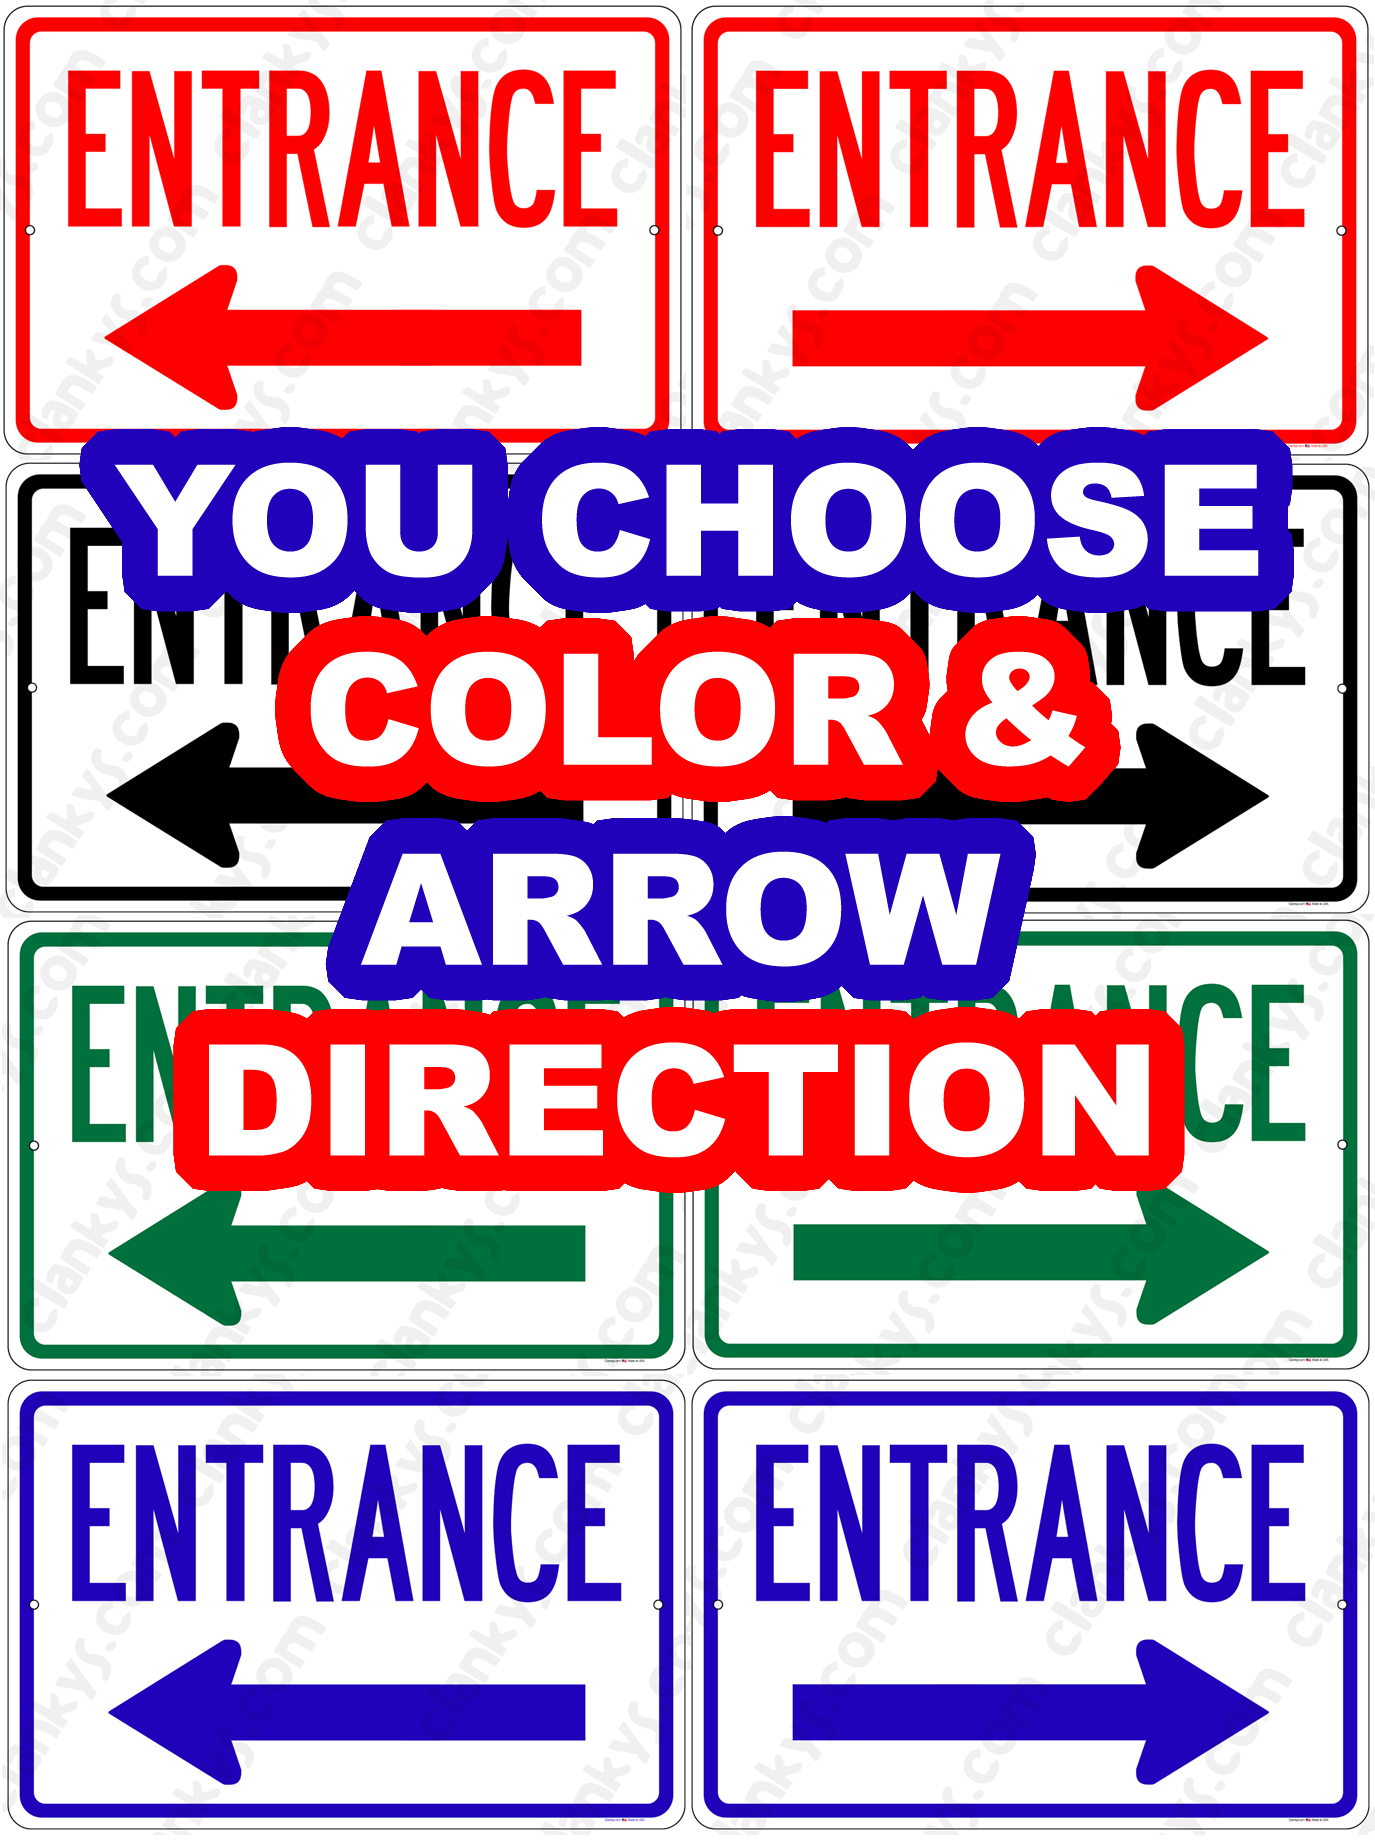 Entrance w/Arrow - You Choose Color 12x8 Aluminum Sign